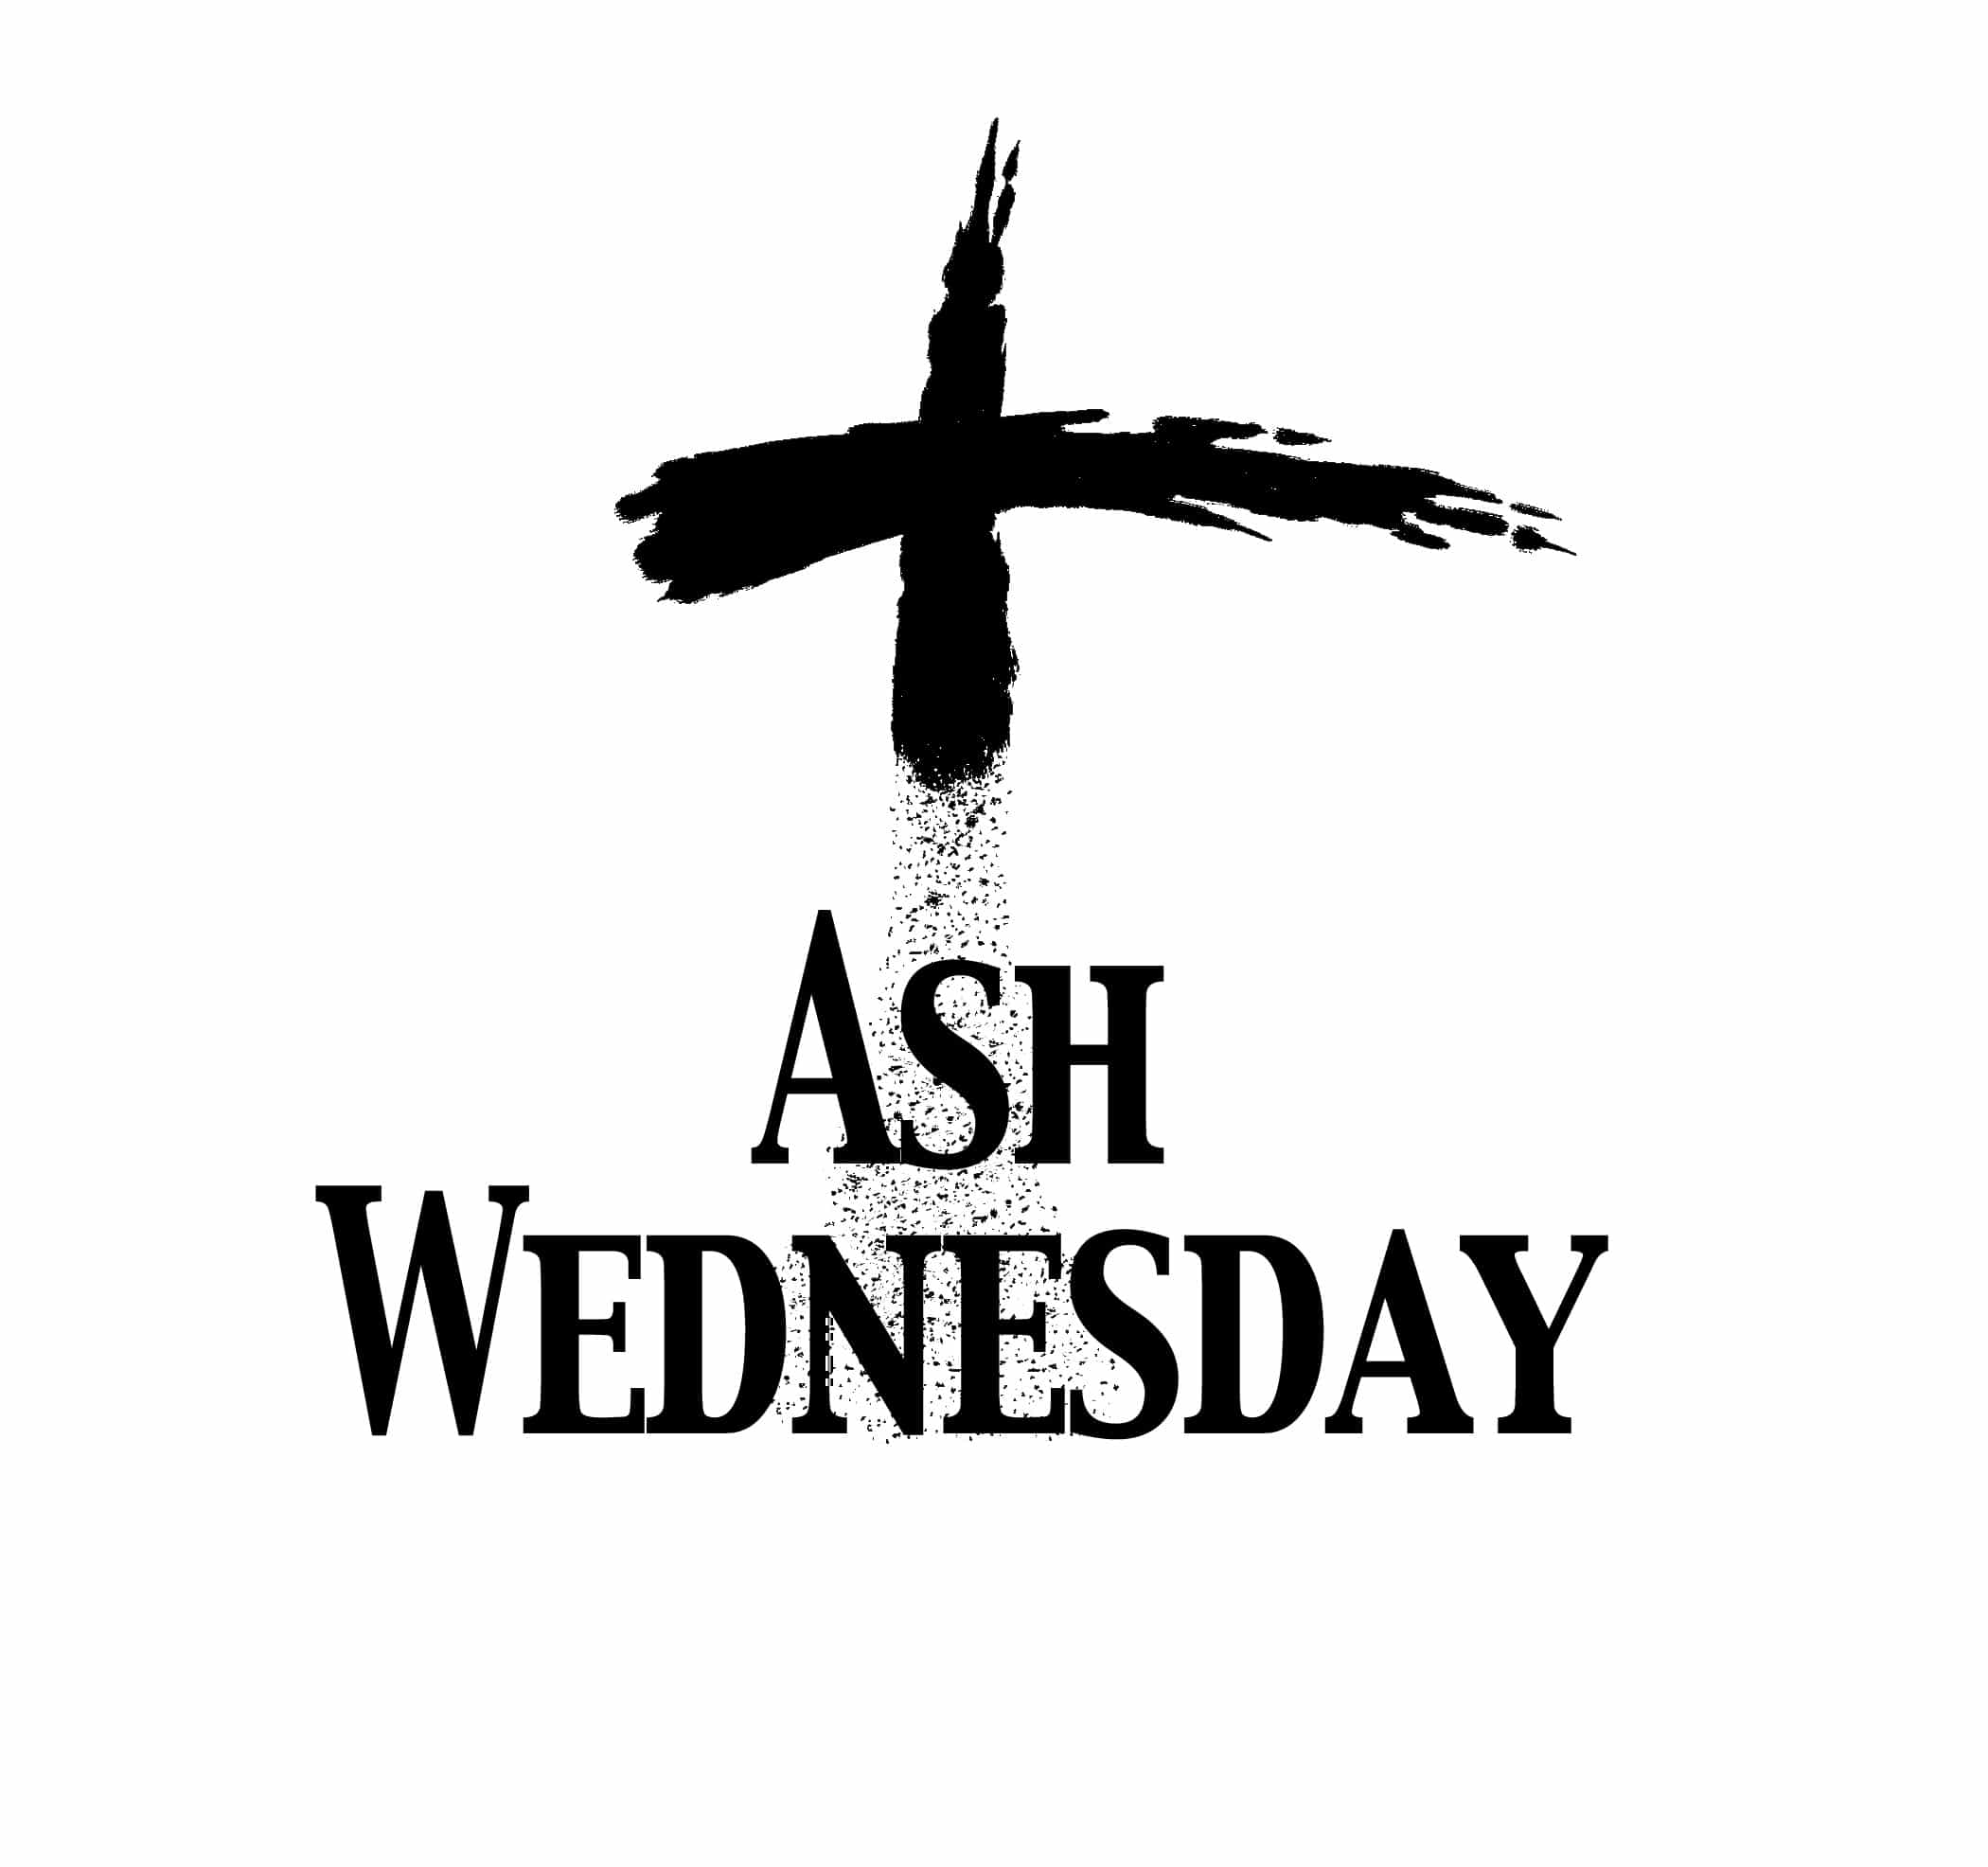 Ash Wednesday Images For Facebook